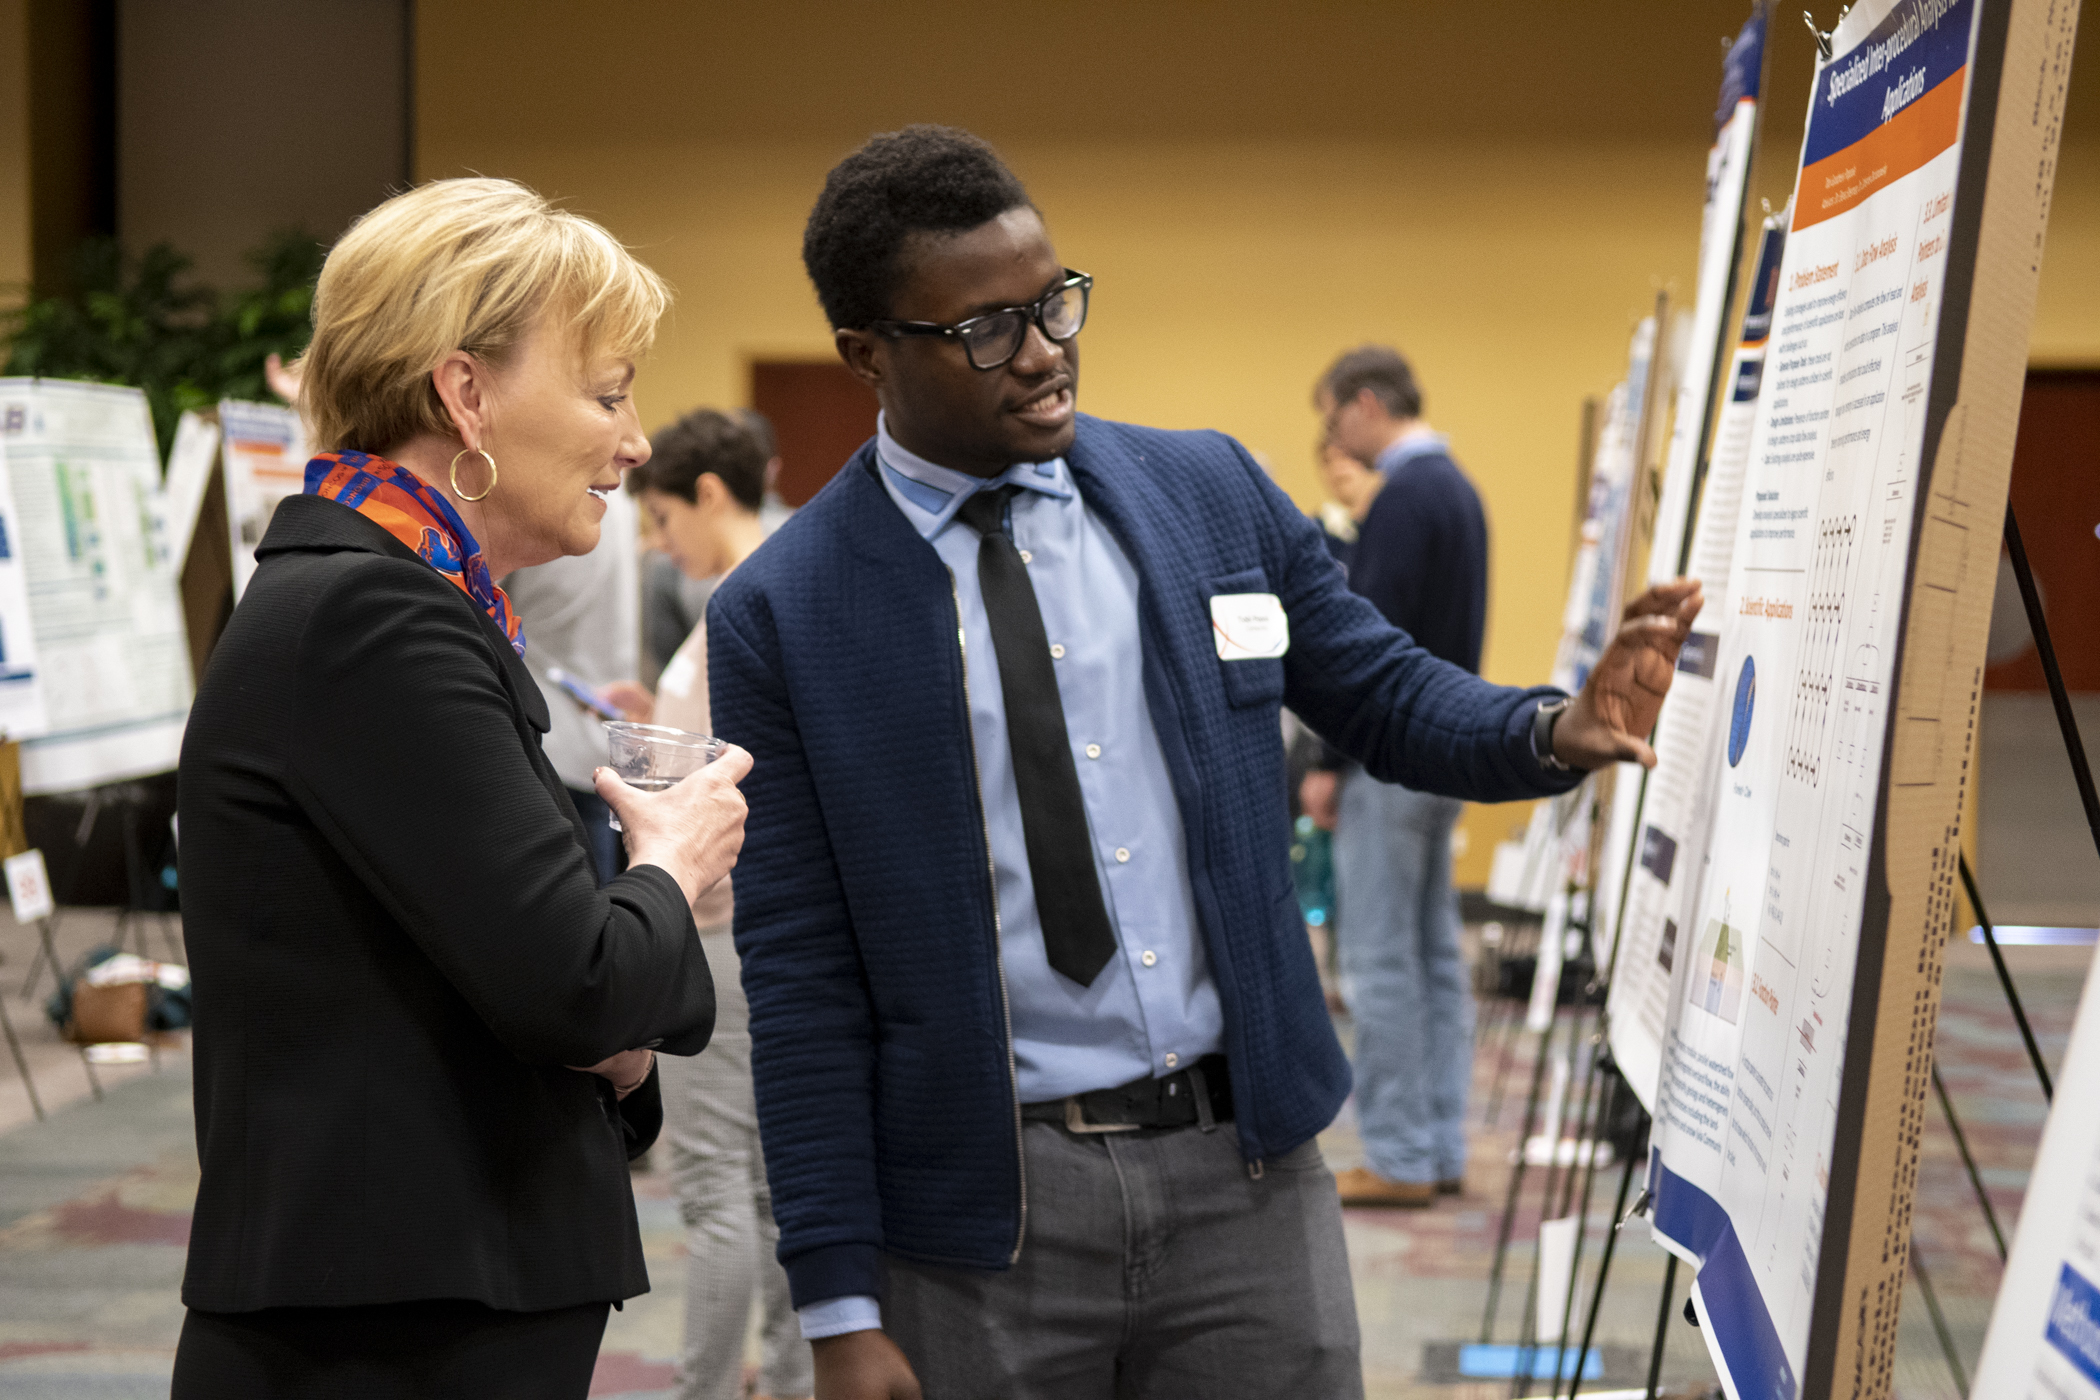 Graduate Student Showcase 2019, Brooke Sutton Photo